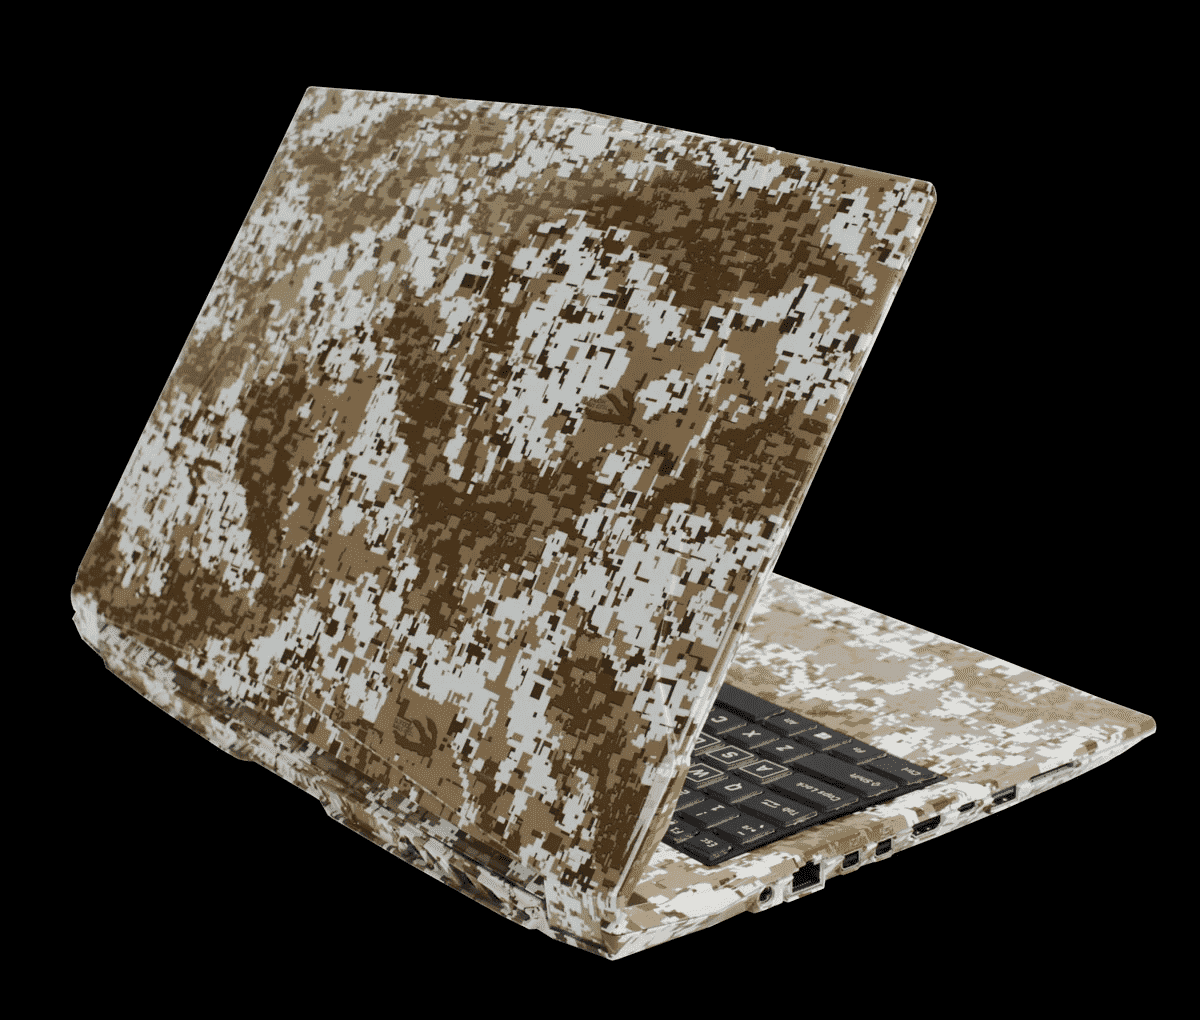 Laptop hydro dipped with a camouflage pattern.